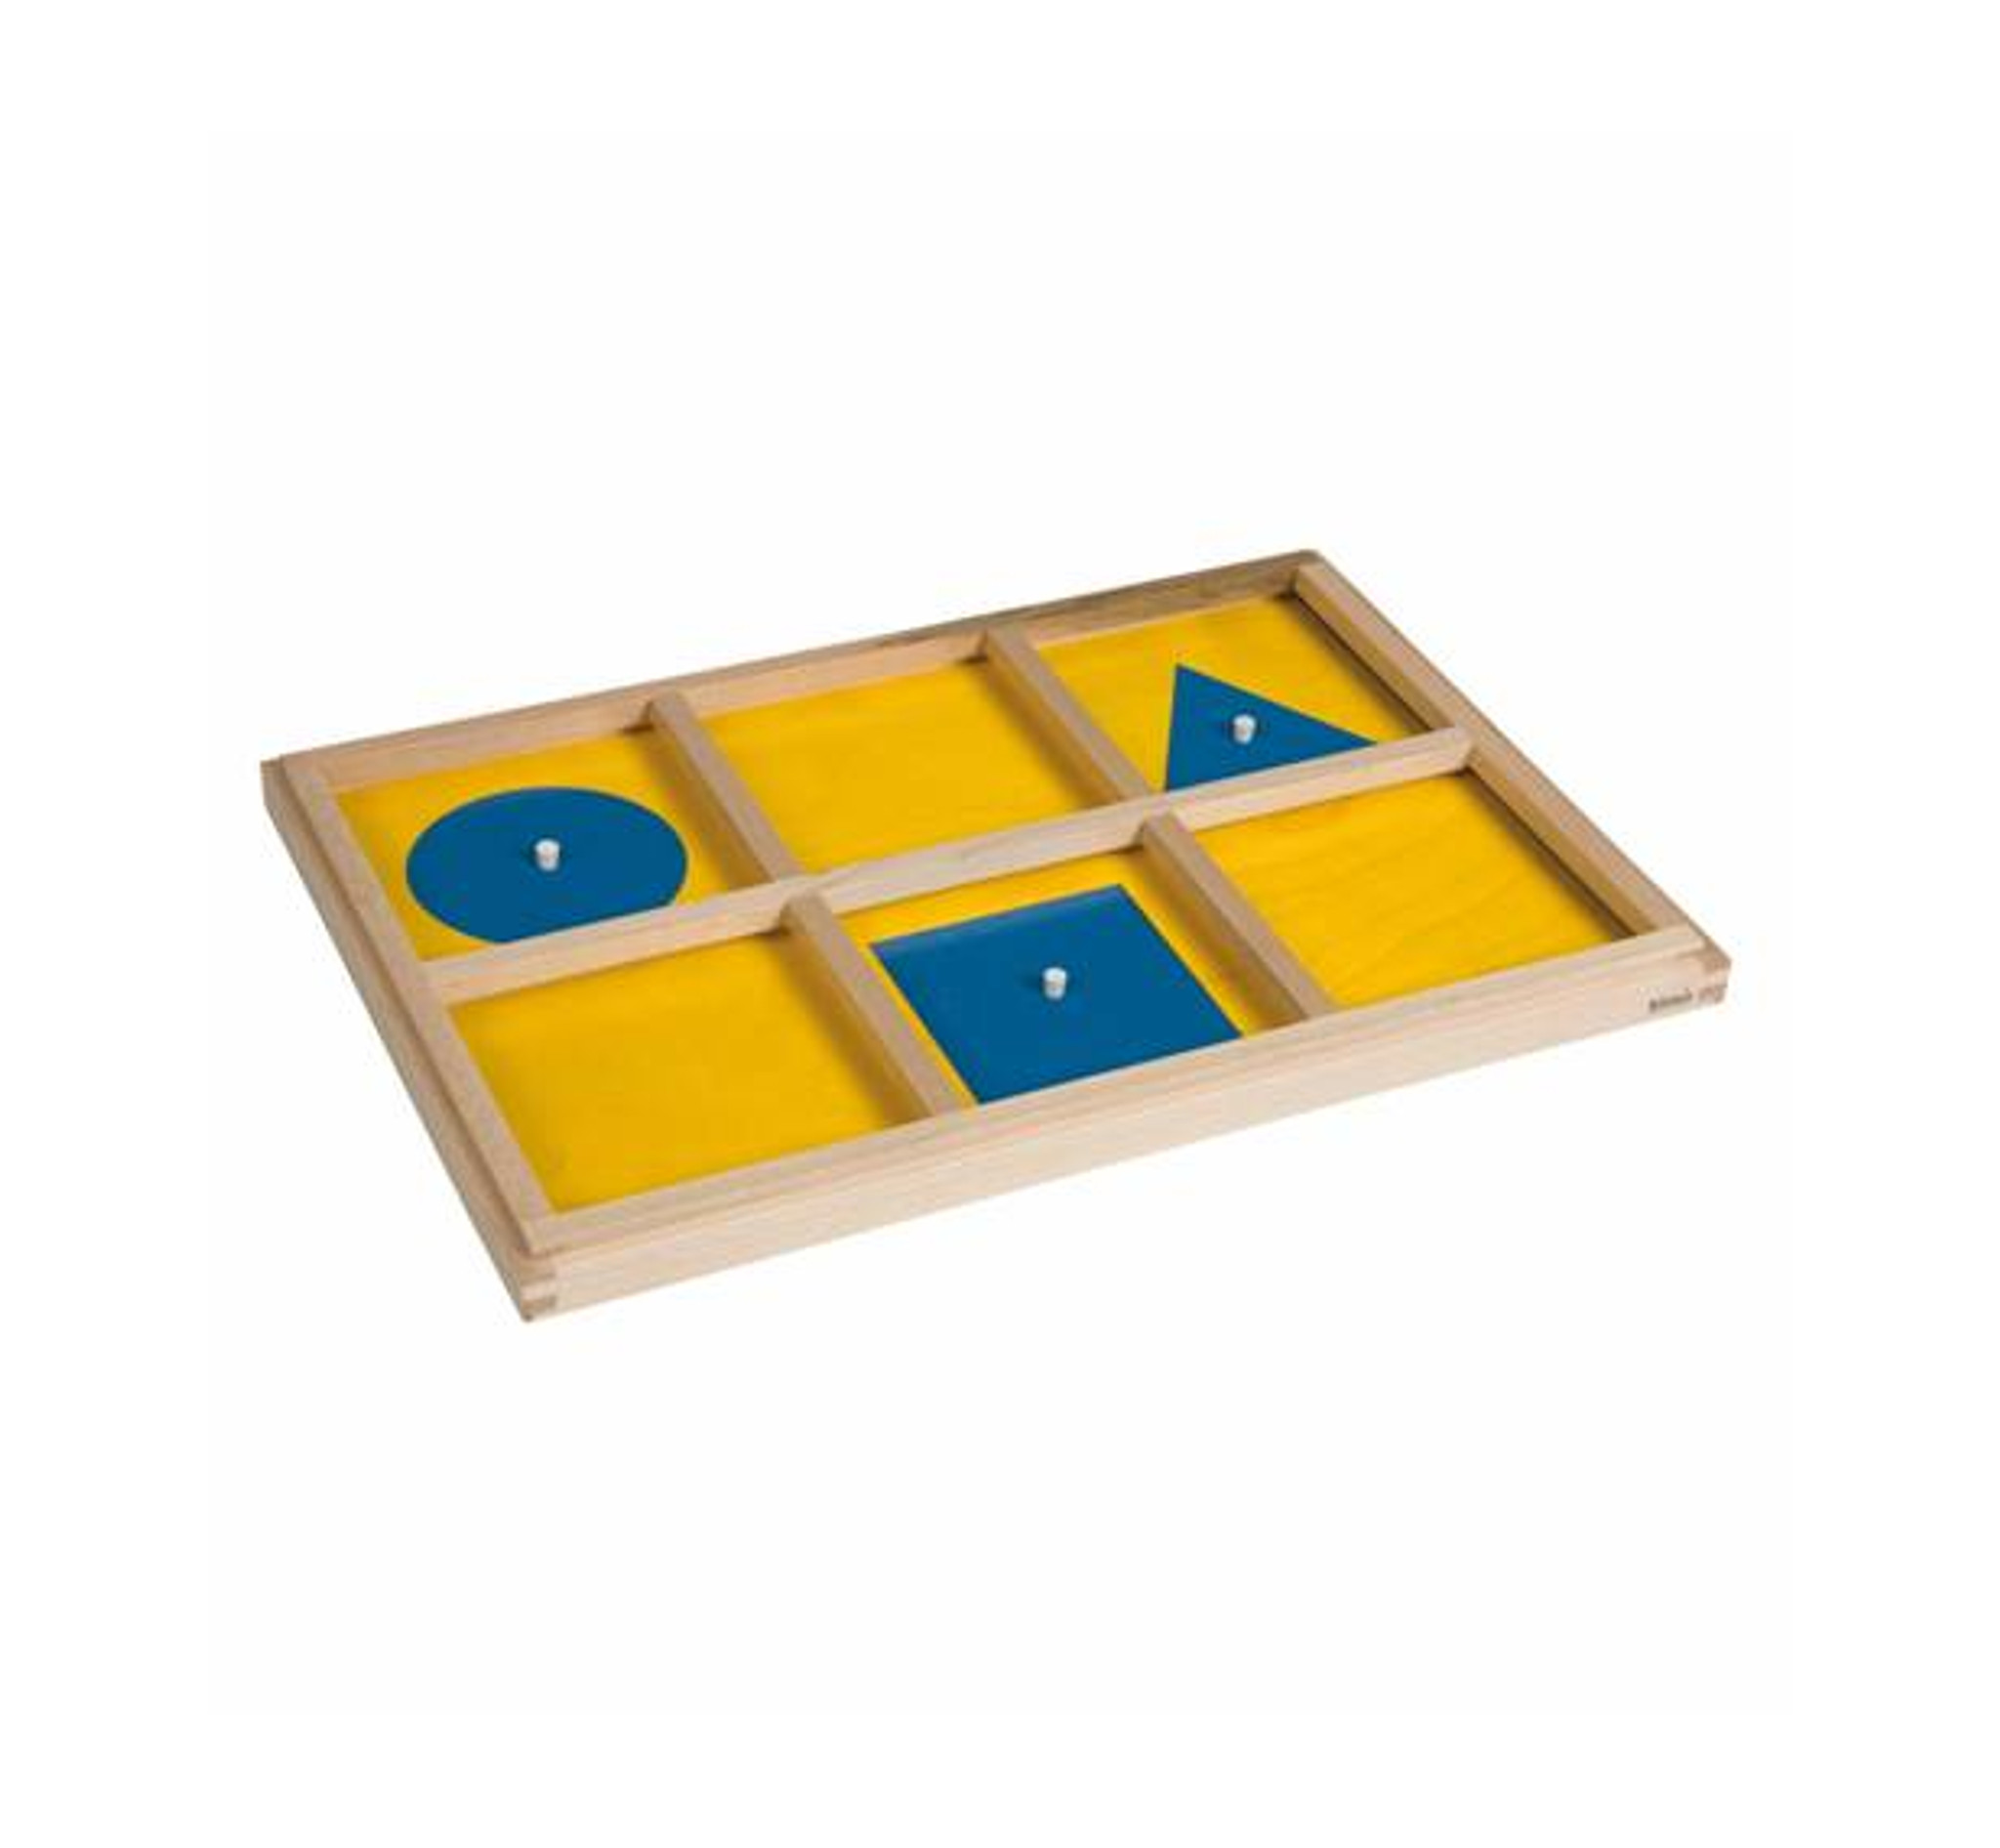 The Geometric Cabinet Demonstration Tray